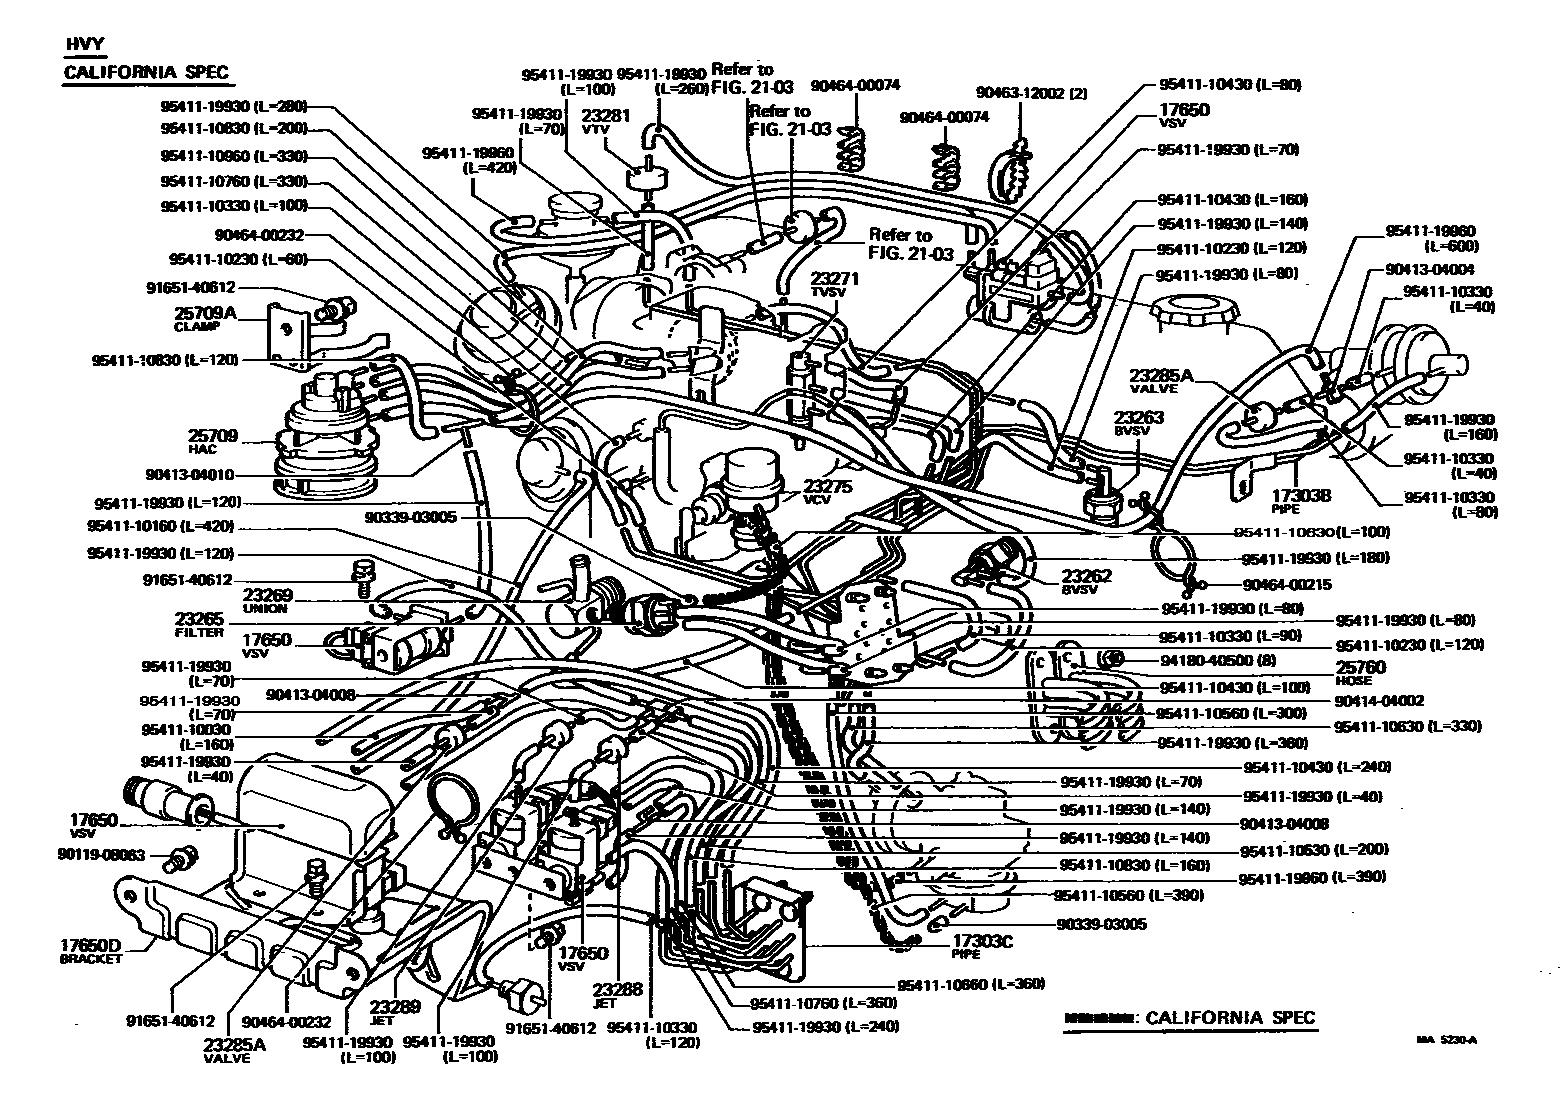 hight resolution of 1993 toyota pickup engine diagram schematic wiring diagrams1993 toyota tacoma engine diagram detailed wiring diagram toyota